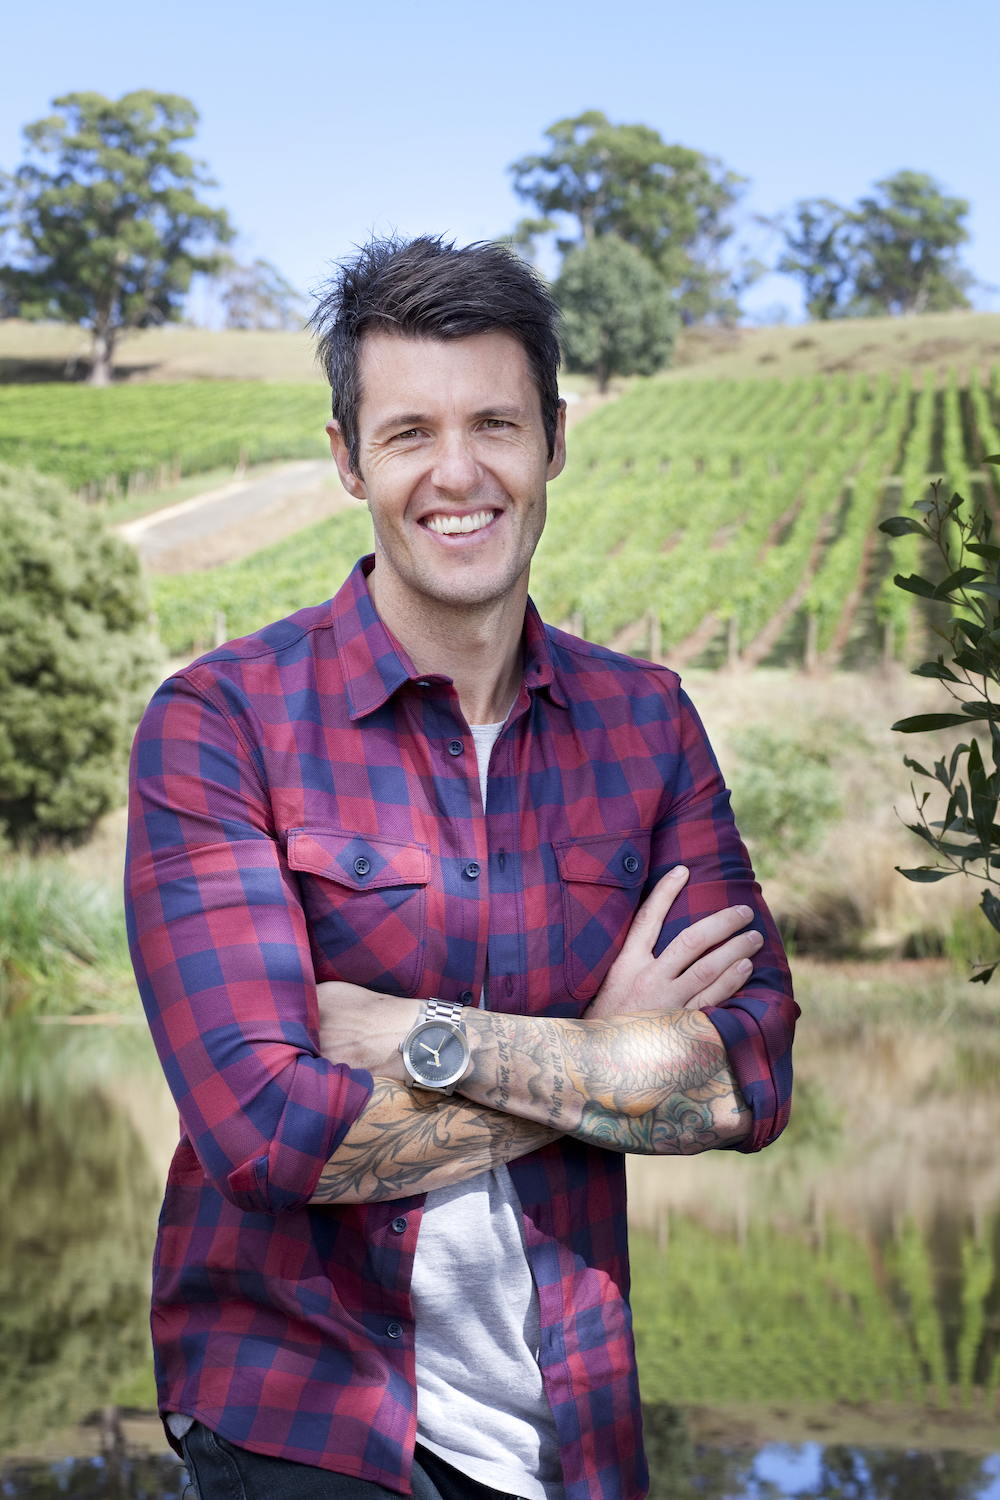 Ben Milbourne Tasmanian Celebrity Chef at Clover Hill Vineyard